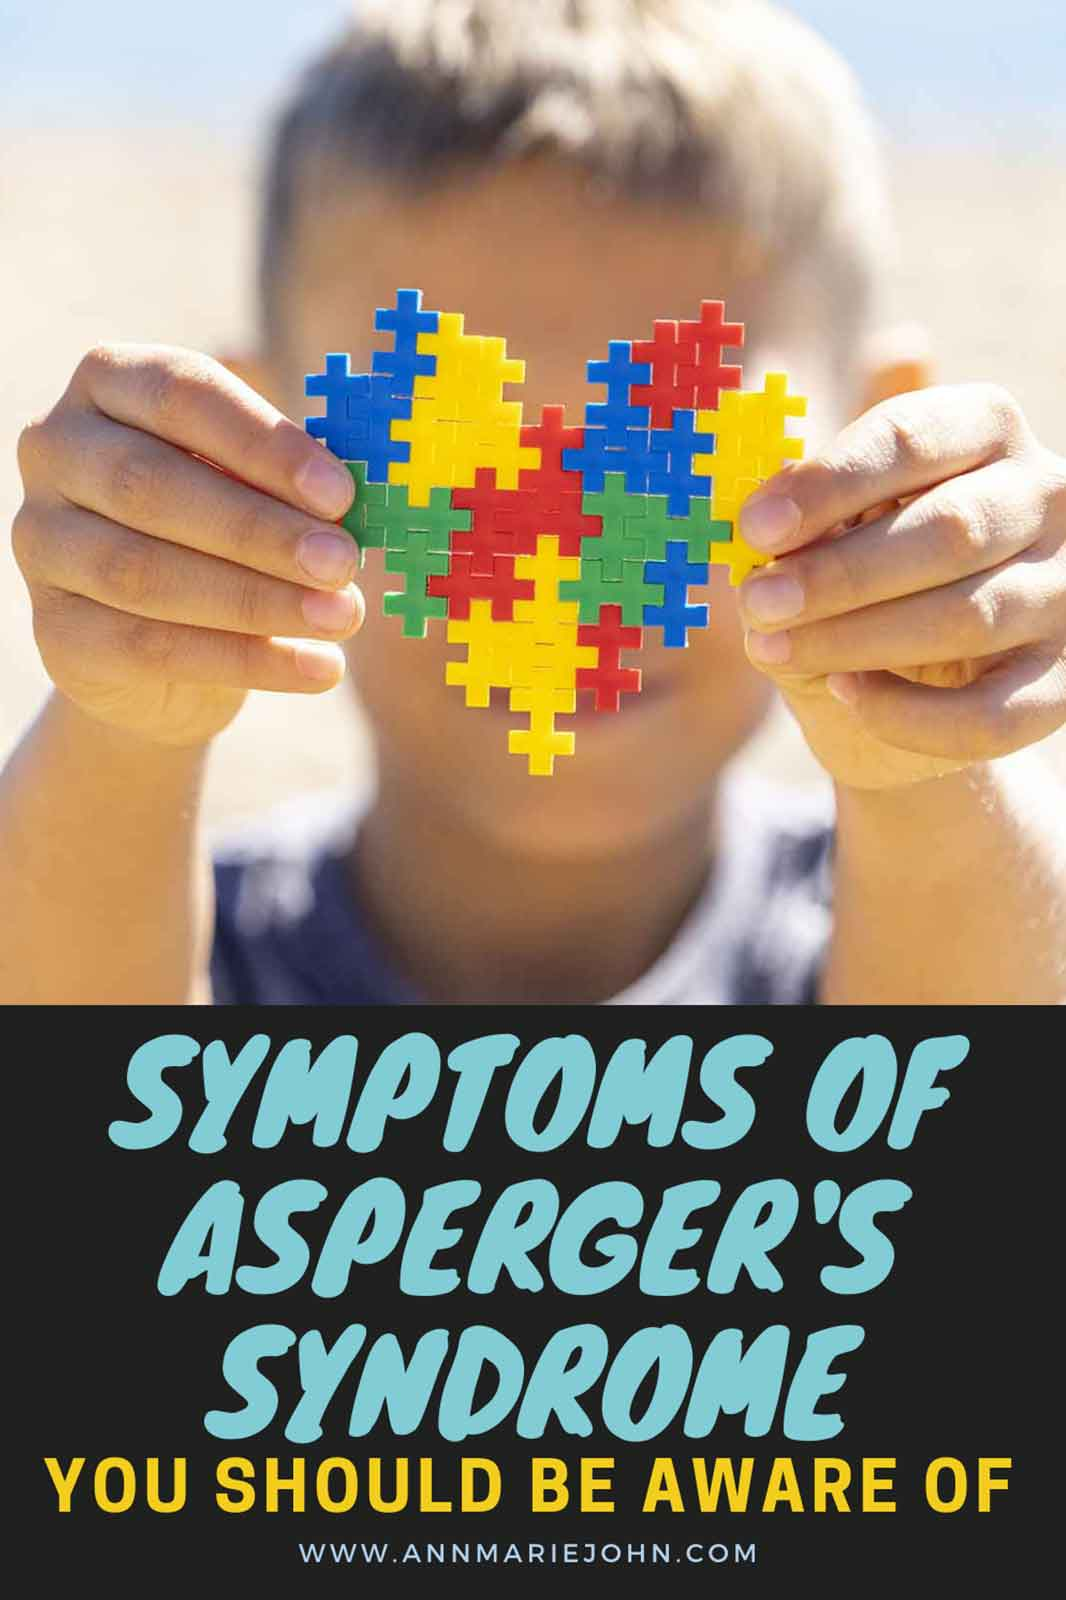 Symptoms of Asperger's Syndrome You Should Be Aware Of